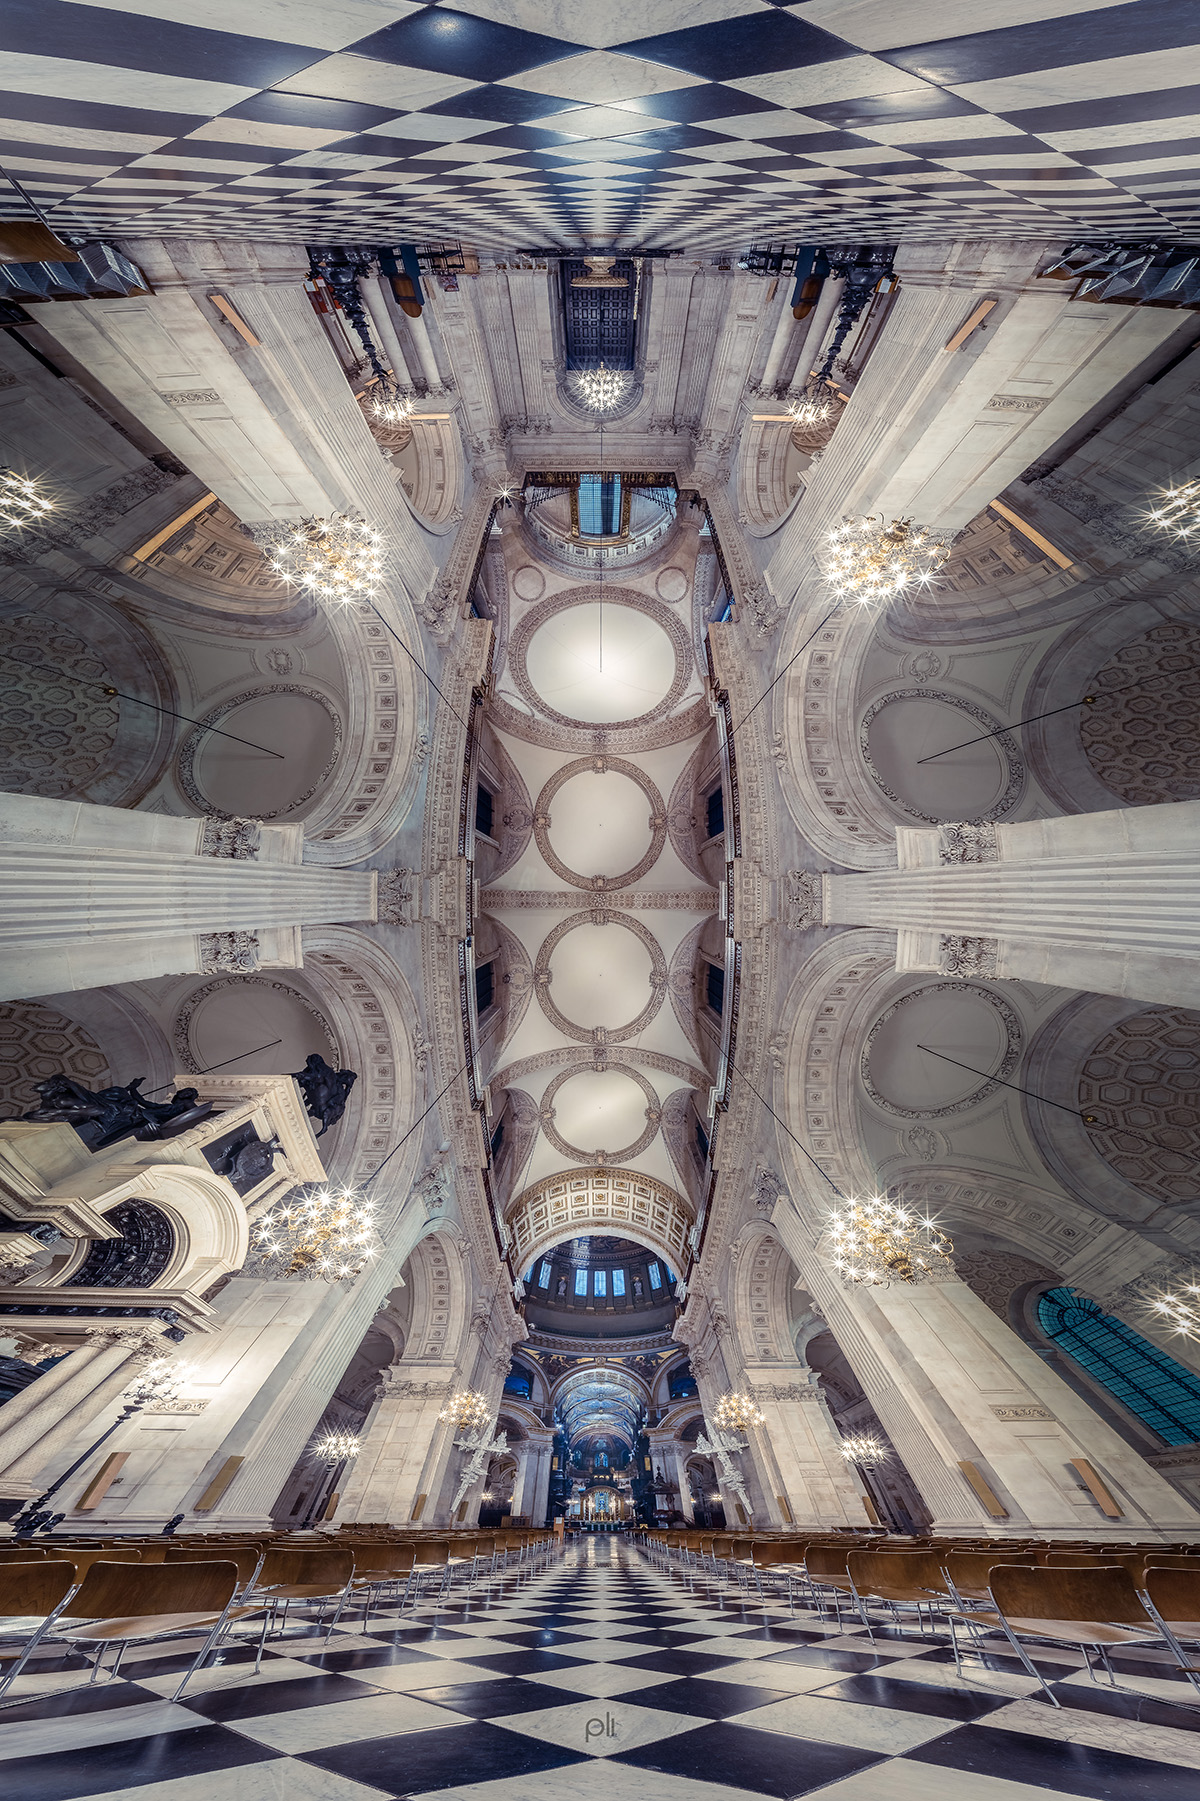 Atrium of St Paul's Cathedral by Peter Li